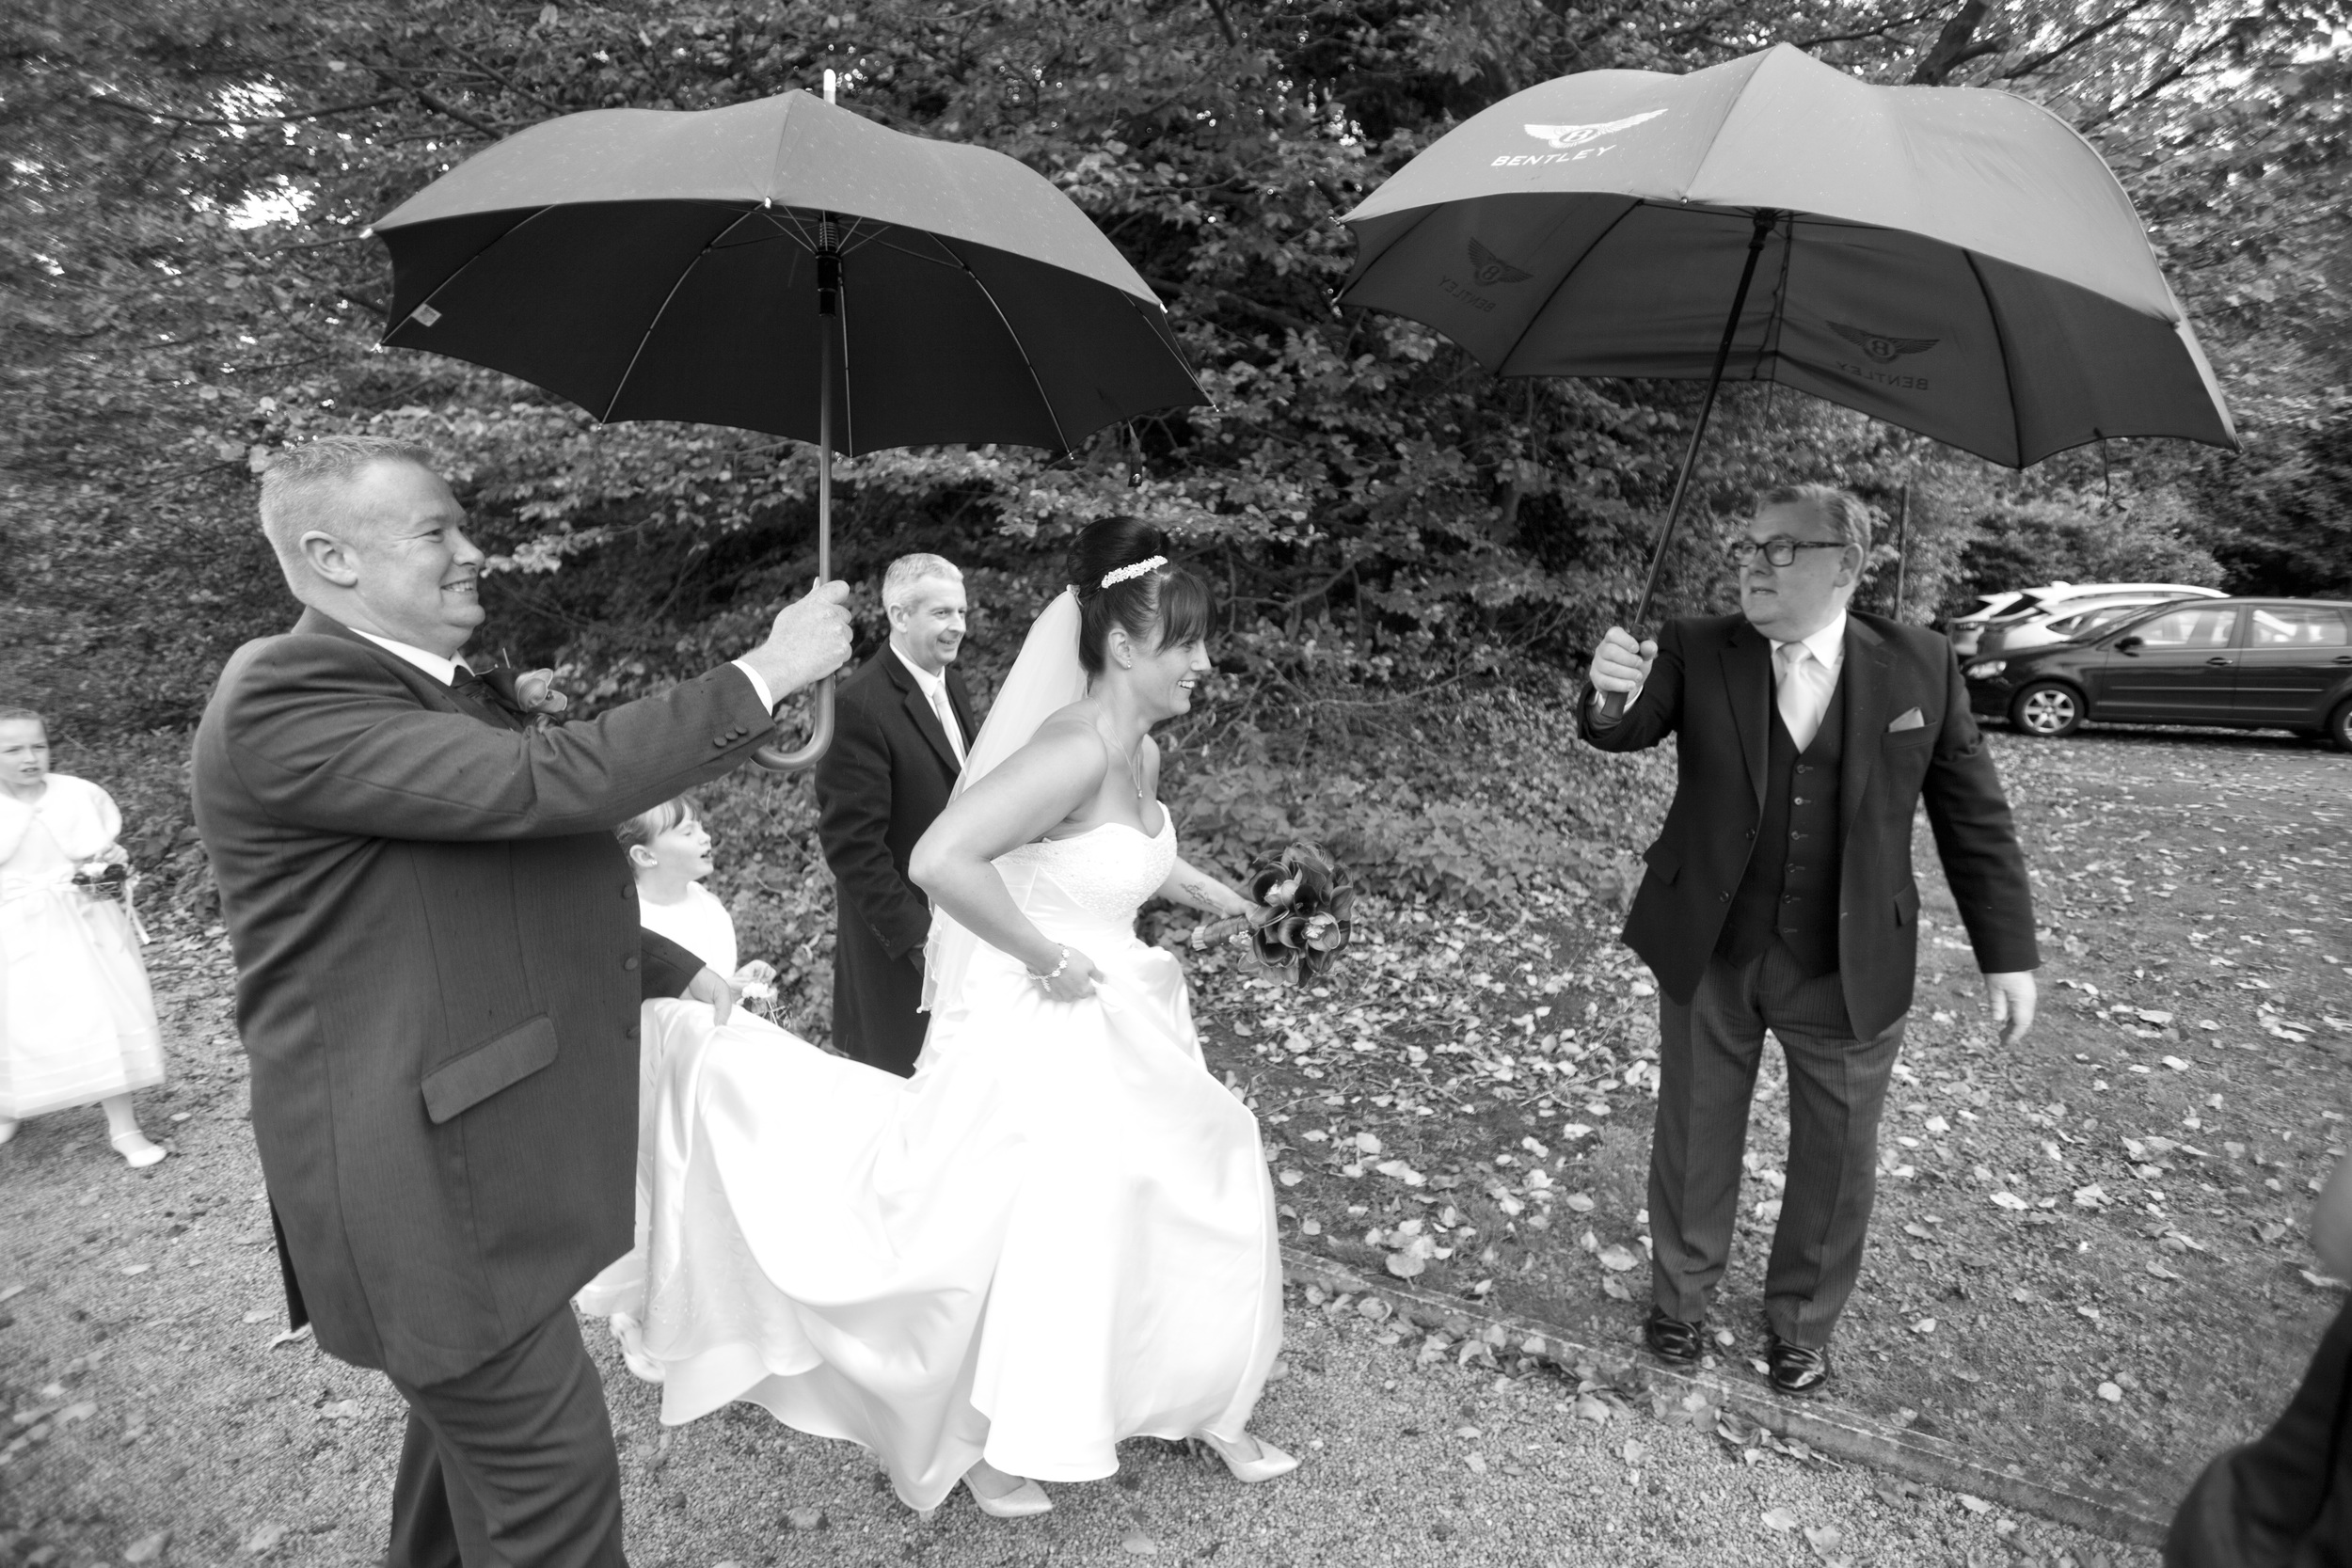 bride with umbrella rain